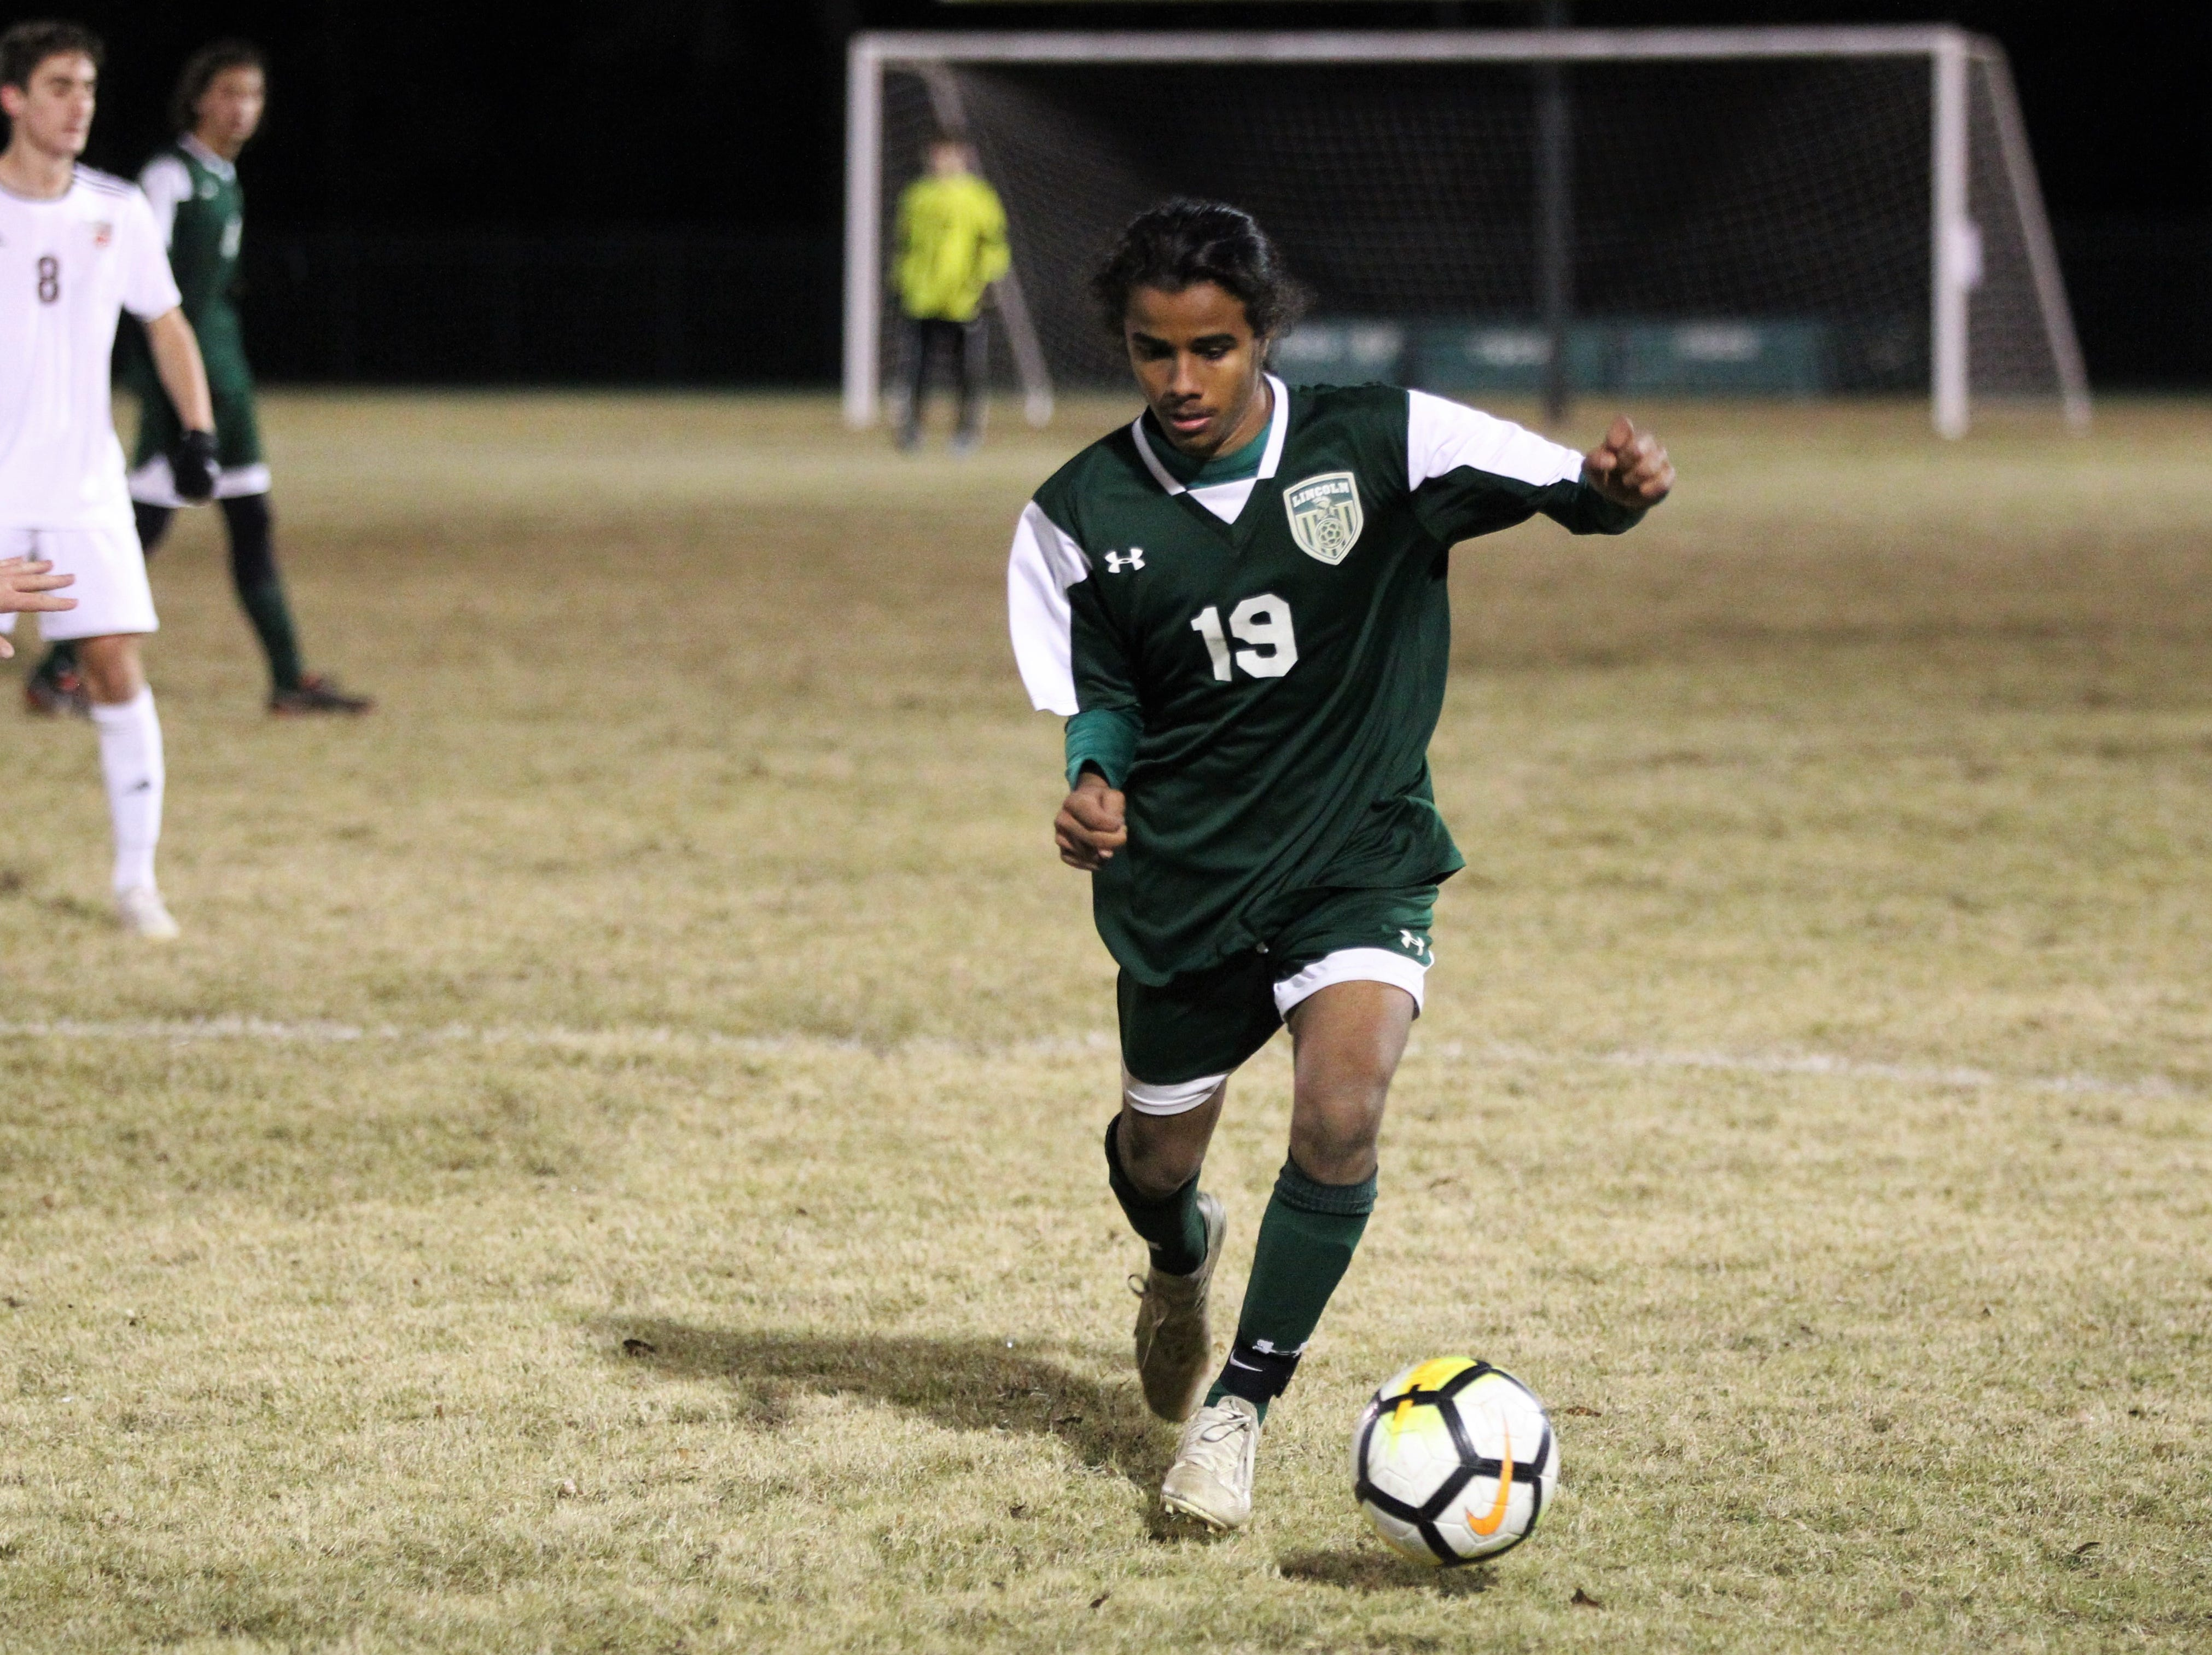 Lincoln forward Ammar Badhabi makes a move upfield as Chiles' boys soccer team beat Lincoln 1-0 in a District 2-4A semifinal on Jan. 30, 2019.